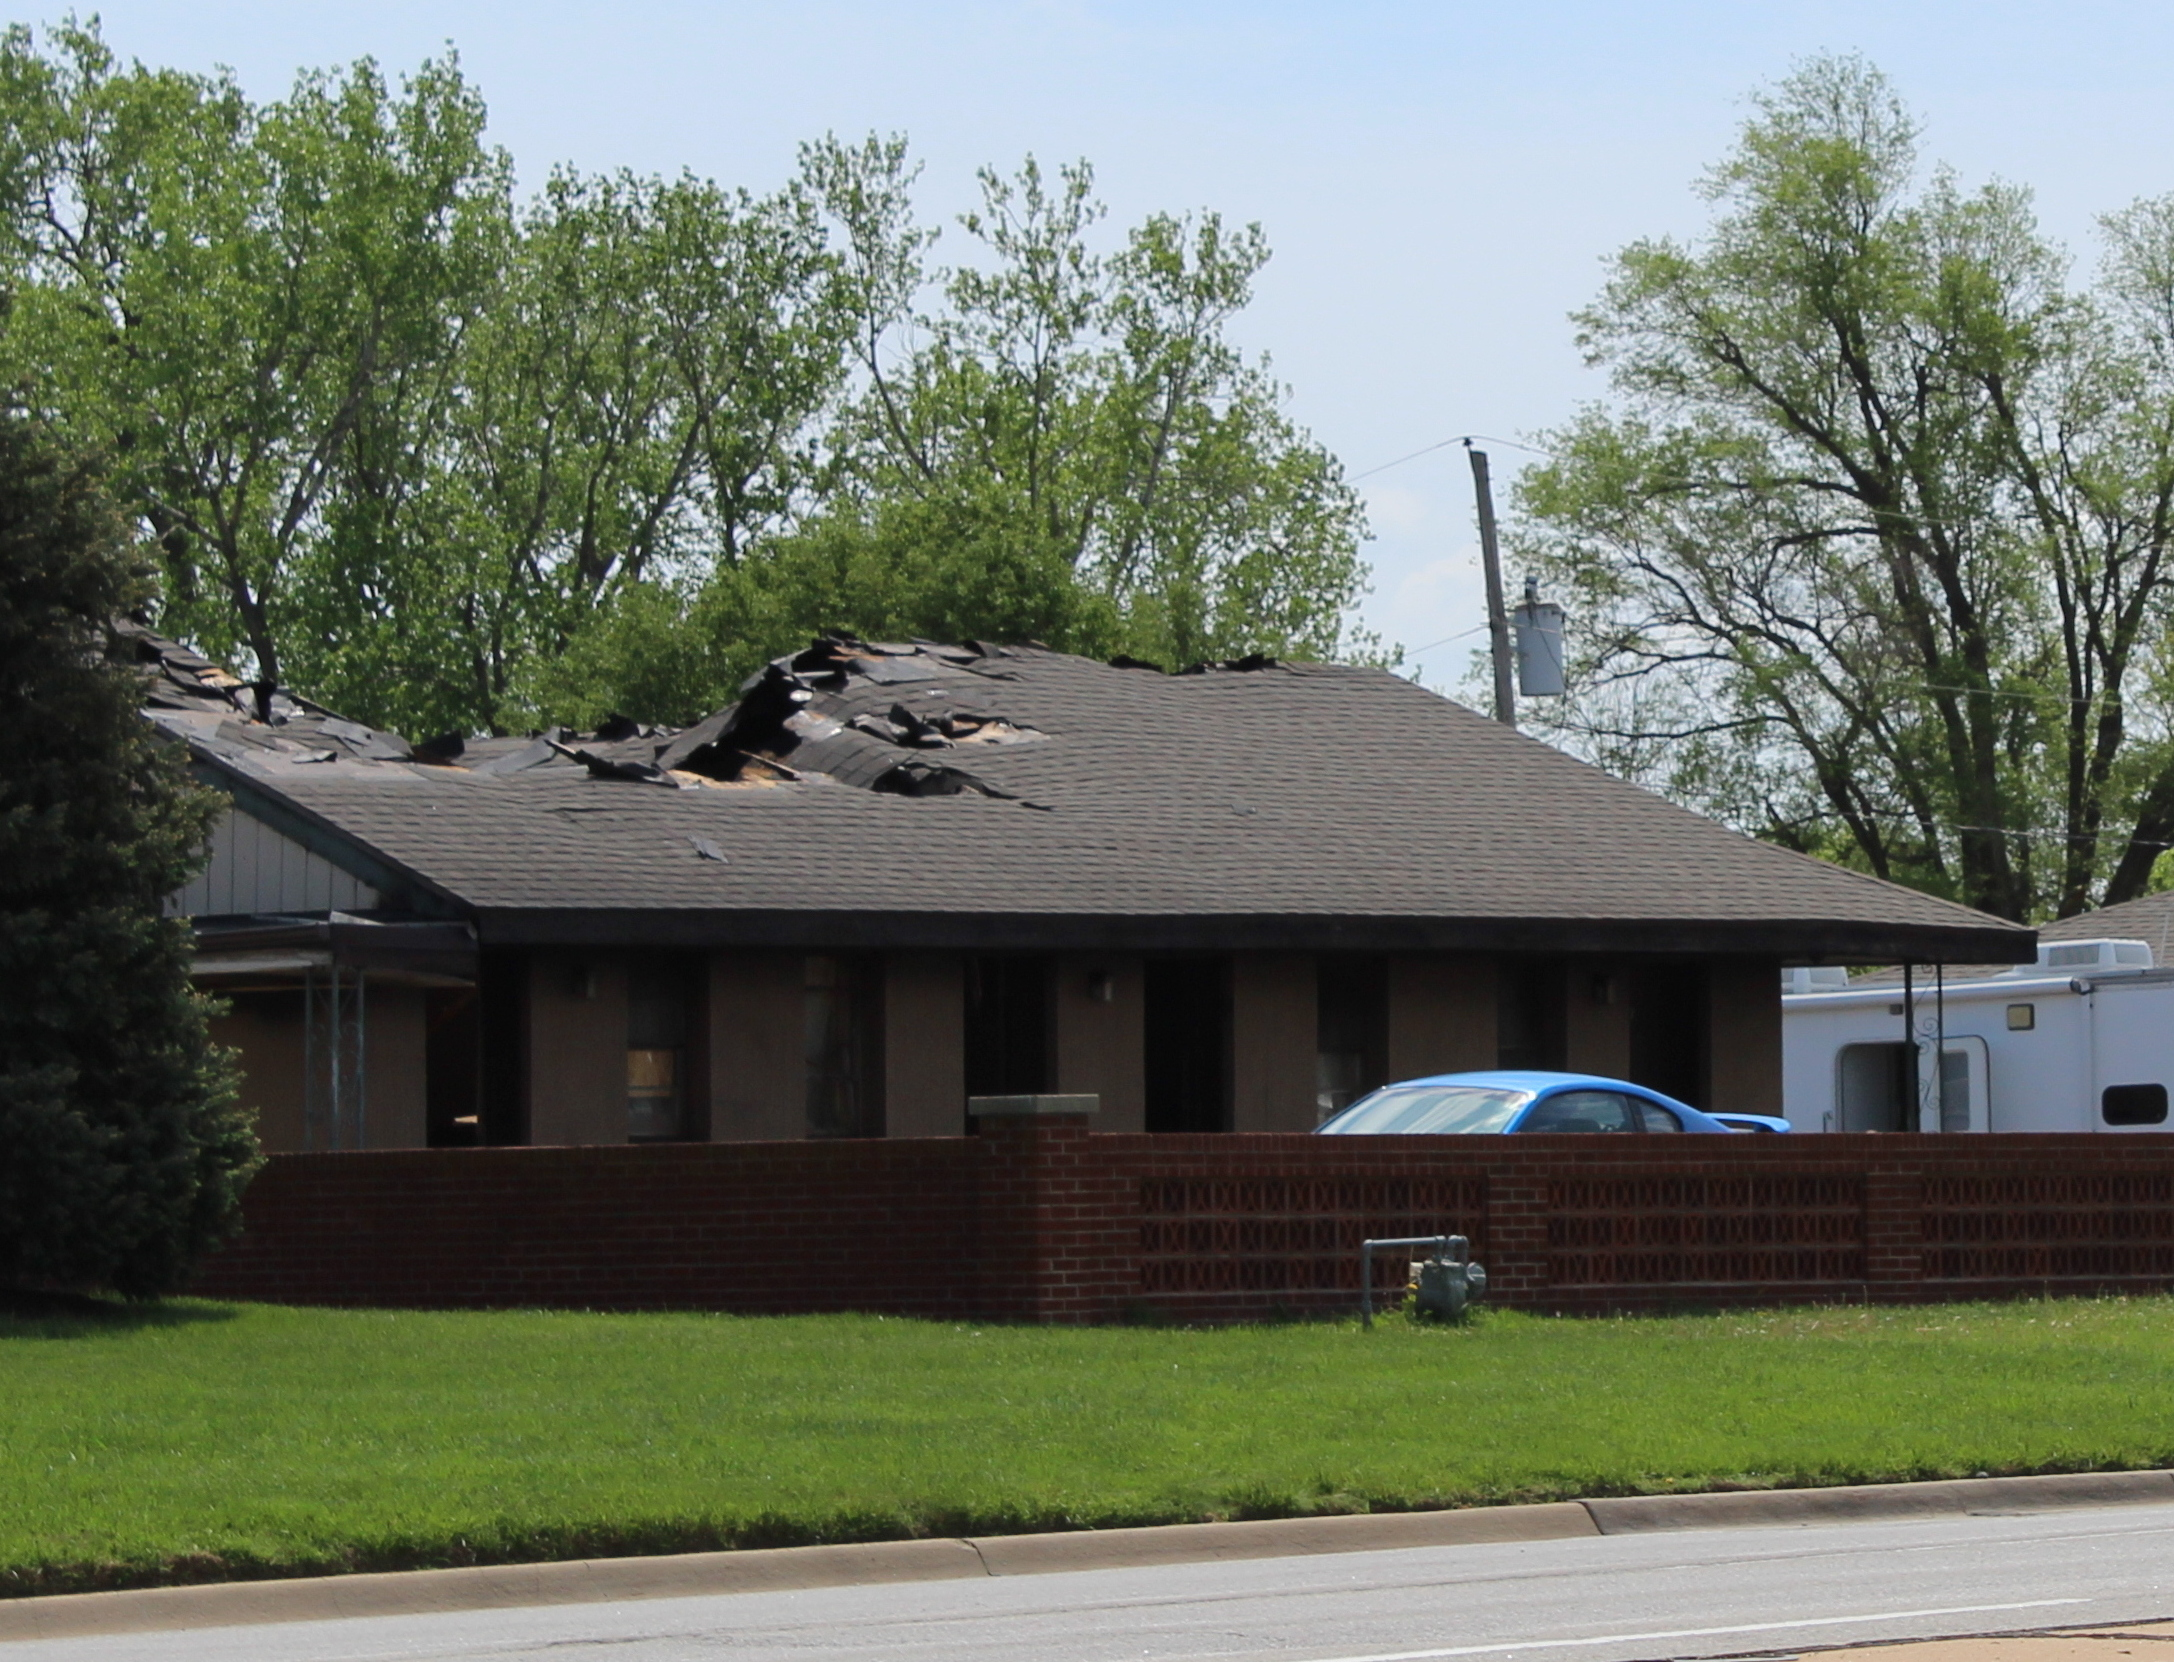 Collapsed roof in part of the burned out Country Club Motel in Topeka, scene of Saturday night's shootout and fire. (Photo by J. Schafer)